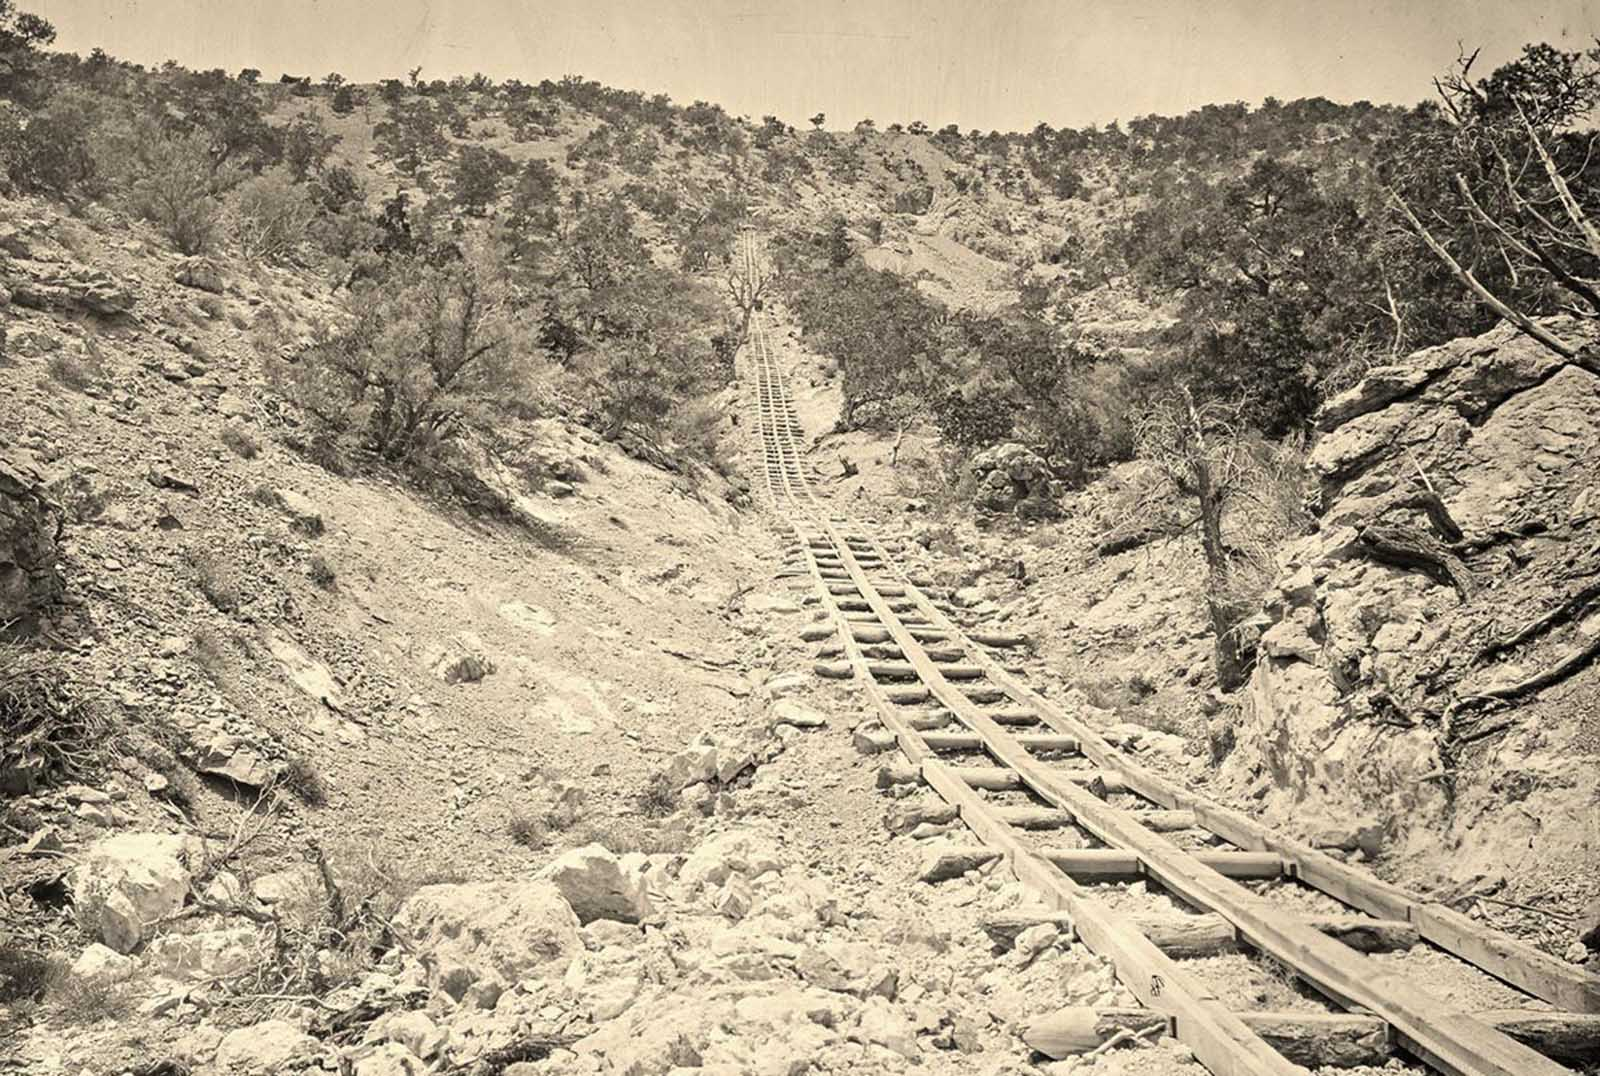 A wooden balanced incline used for gold mining, at the Illinois Mine in the Pahranagat Mining District, Nevada in 1871. An ore car would ride on parallel tracks connected to a pulley wheel at the top of tracks.